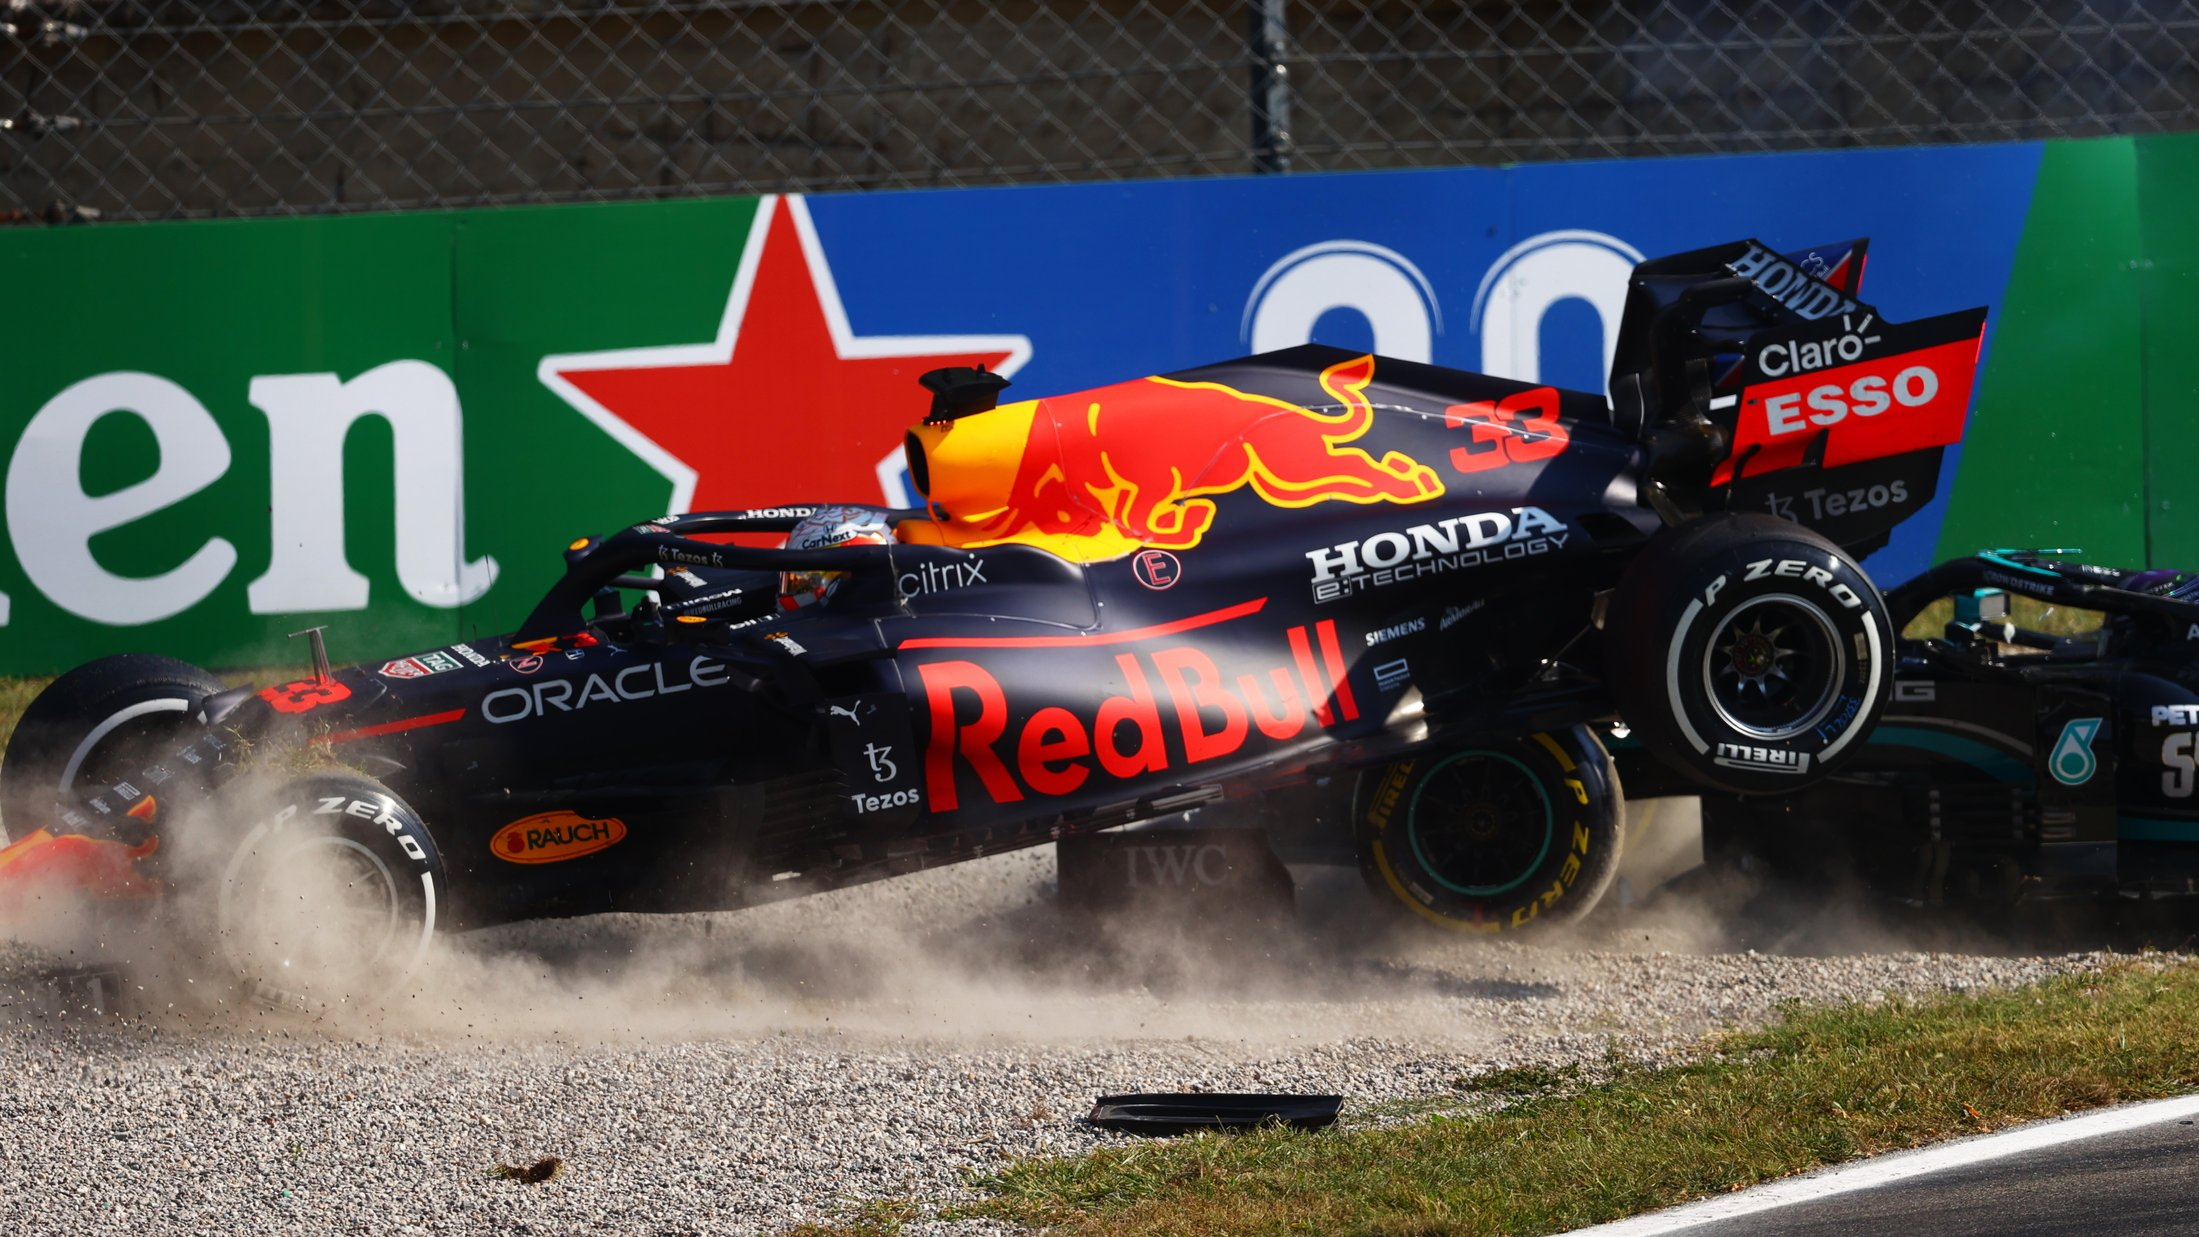 MONZA, ITALY - SEPTEMBER 12: Max Verstappen of the Netherlands driving the (33) Red Bull Racing RB16B Honda and Lewis Hamilton of Great Britain driving the (44) Mercedes AMG Petronas F1 Team Mercedes W12 crash during the F1 Grand Prix of Italy at Autodromo di Monza on September 12, 2021 in Monza, Italy. (Photo by Dan Istitene - Formula 1/Formula 1 via Getty Images)